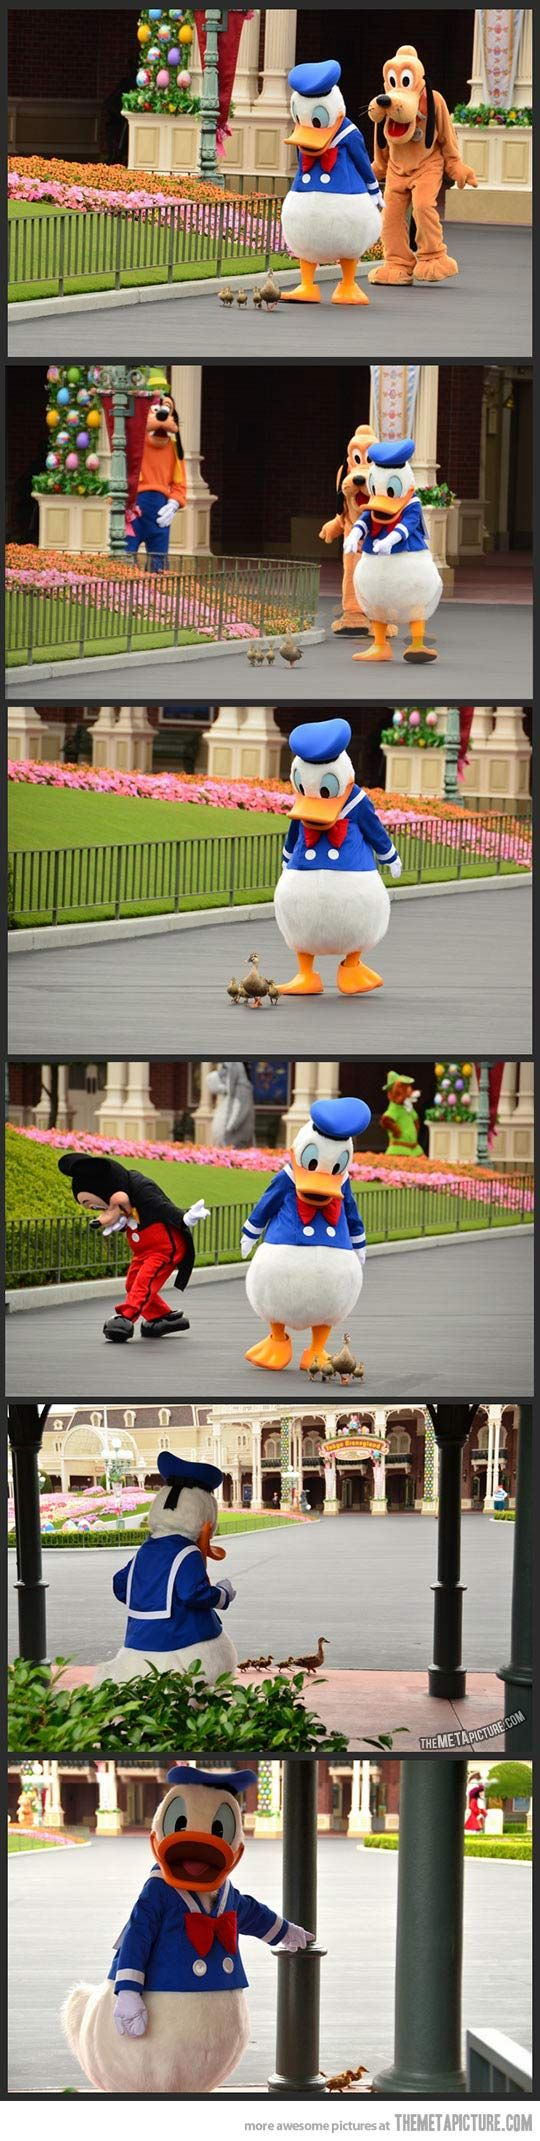 These pictures just make me smile! Especially the one at the end! Too cute :)